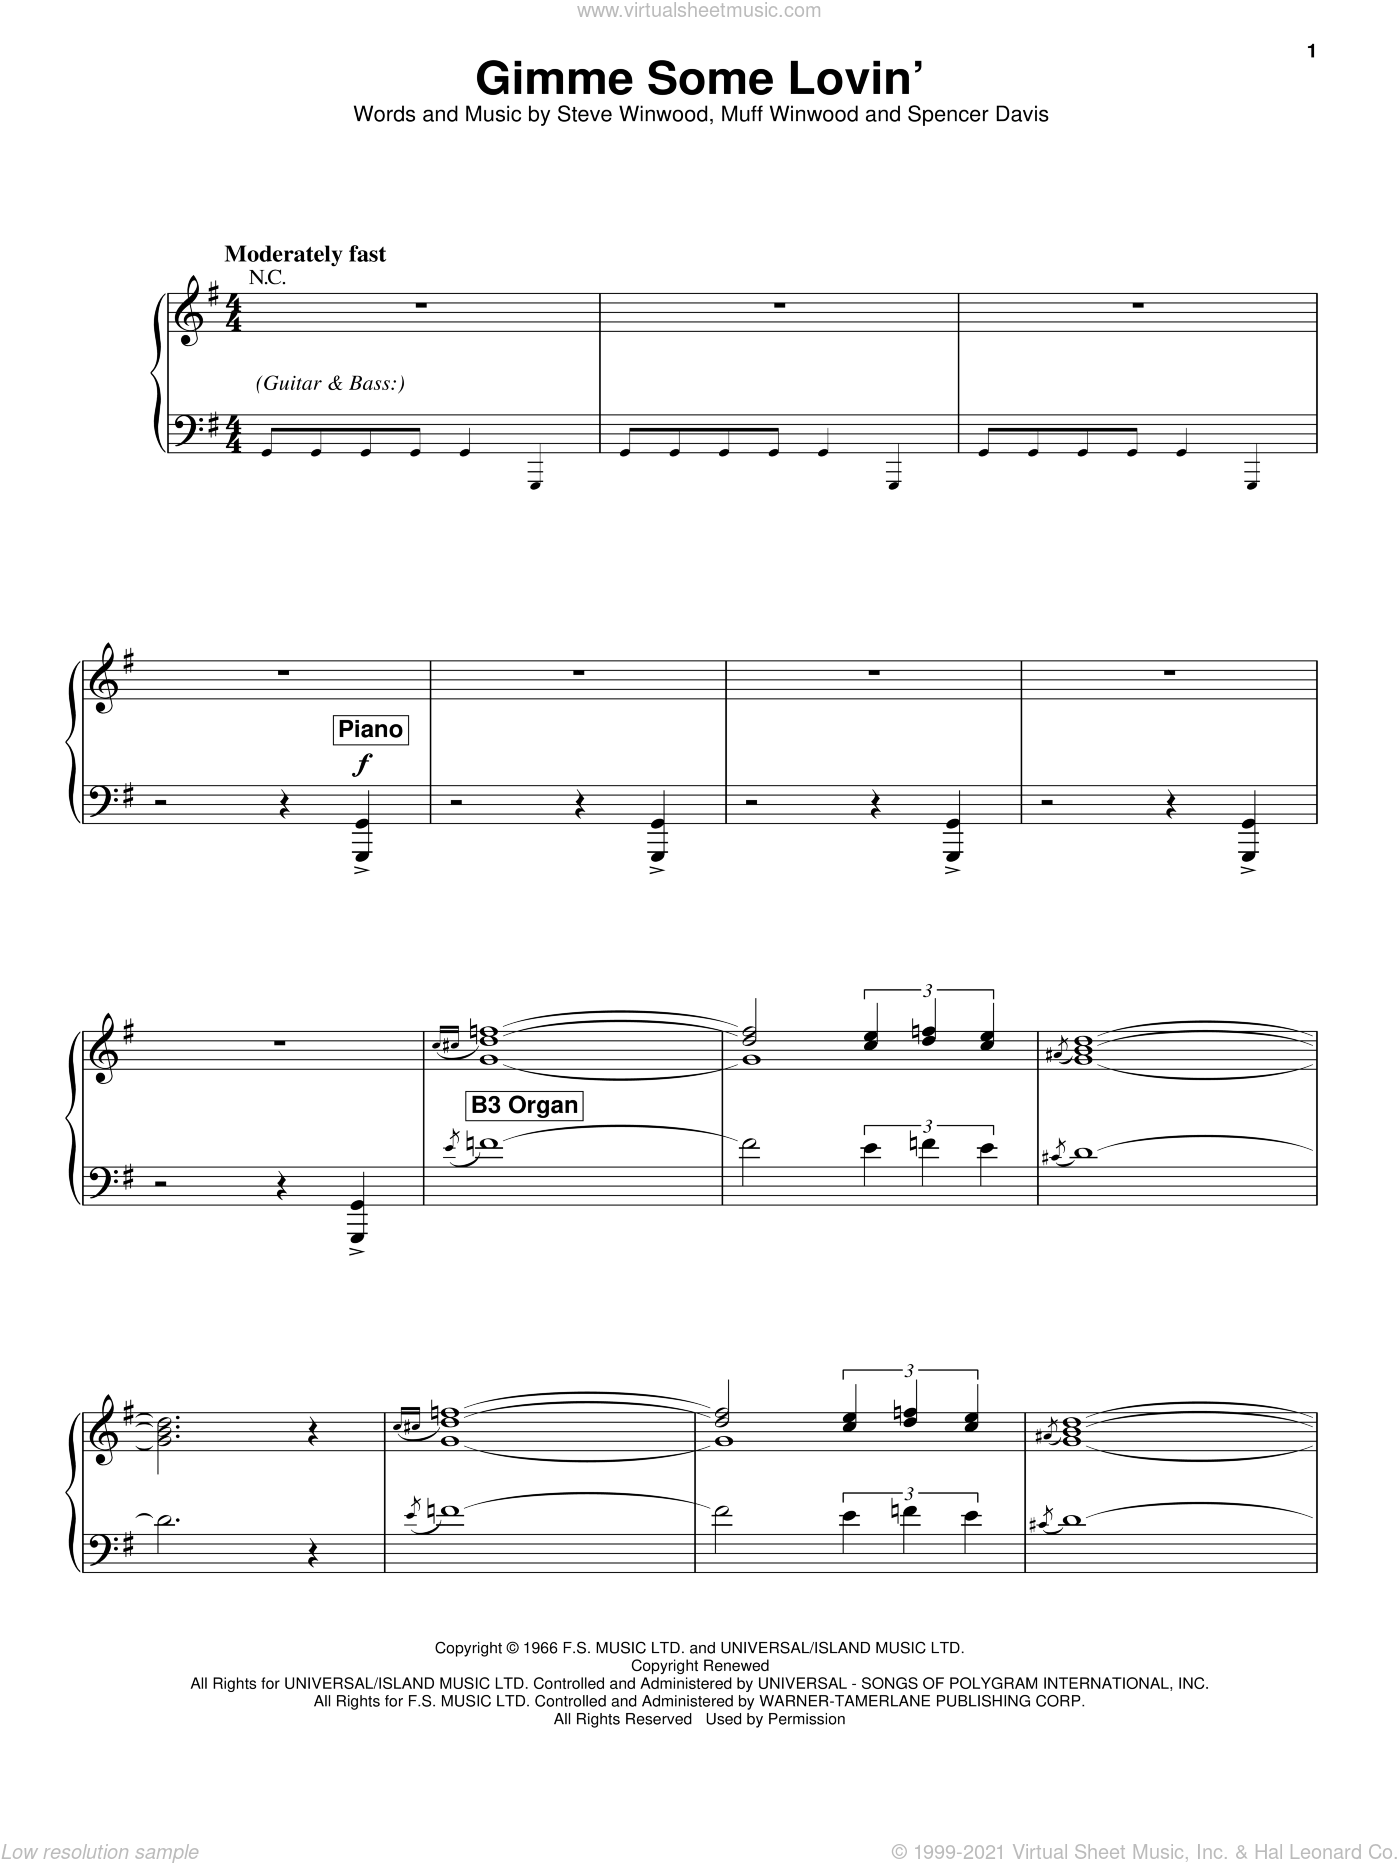 Gimme Some Lovin' sheet music for voice and piano by Spencer Davis